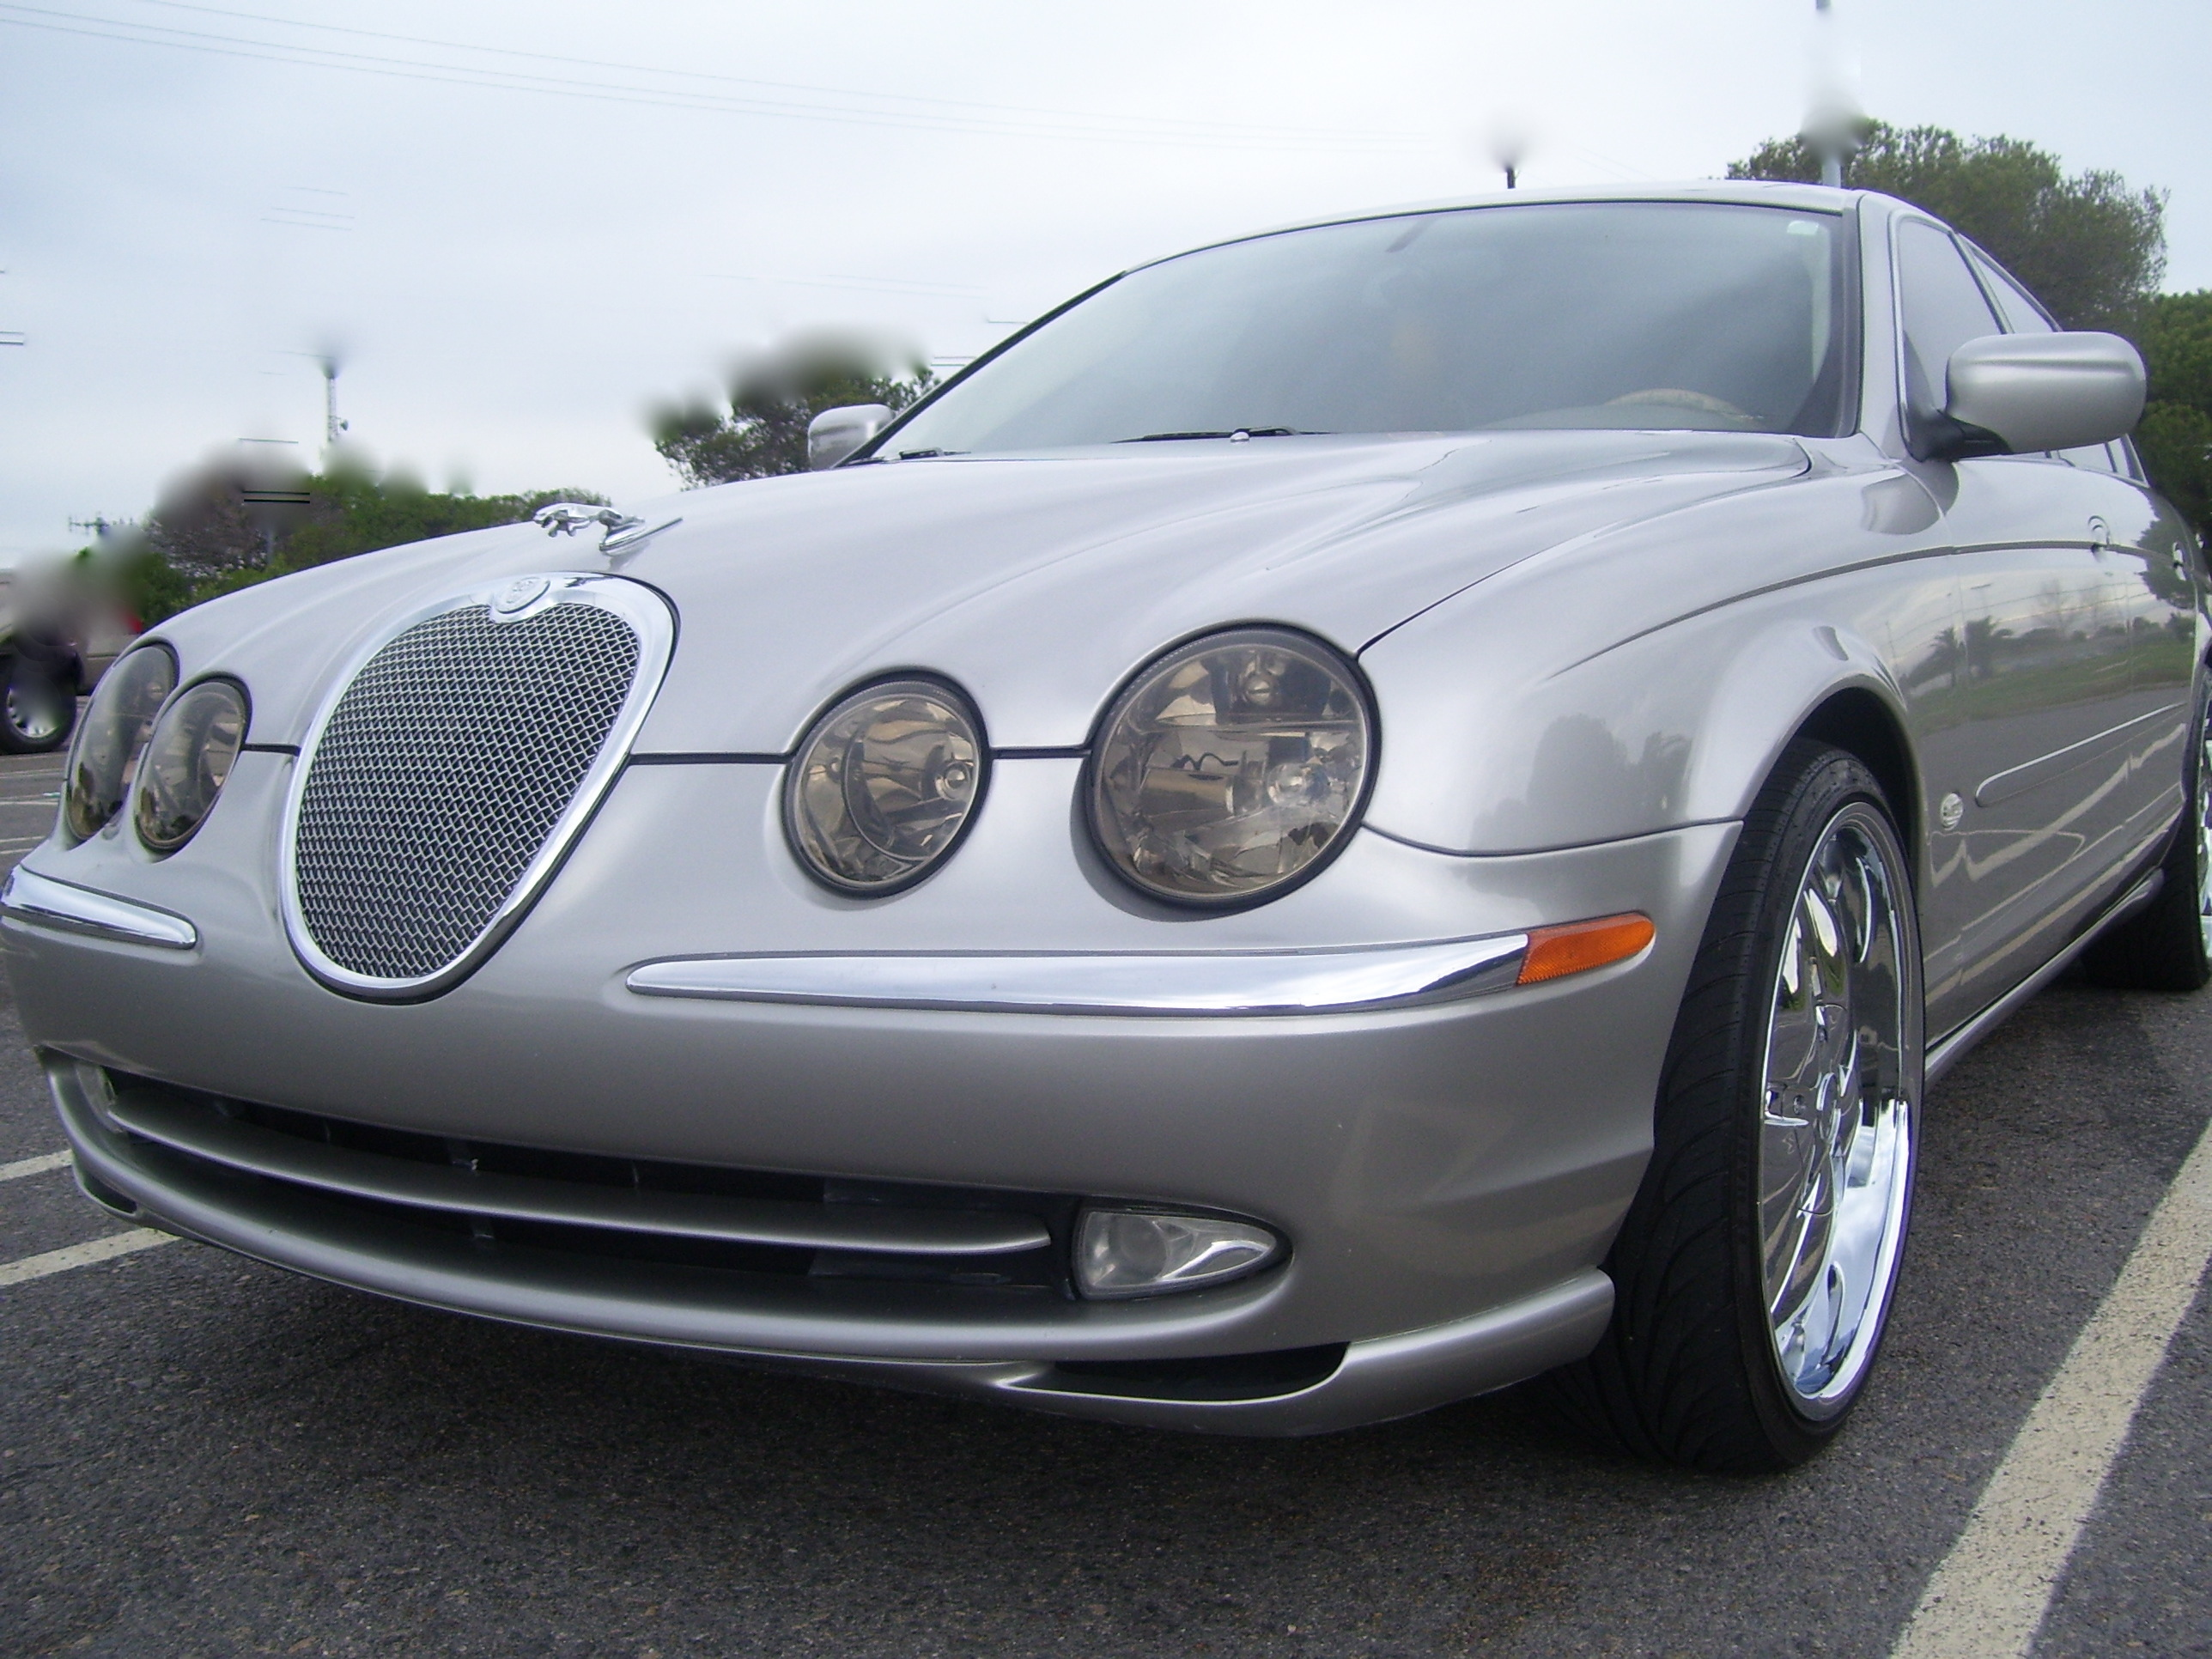 mdupree 2000 jaguar s type specs photos modification info at cardomain. Black Bedroom Furniture Sets. Home Design Ideas